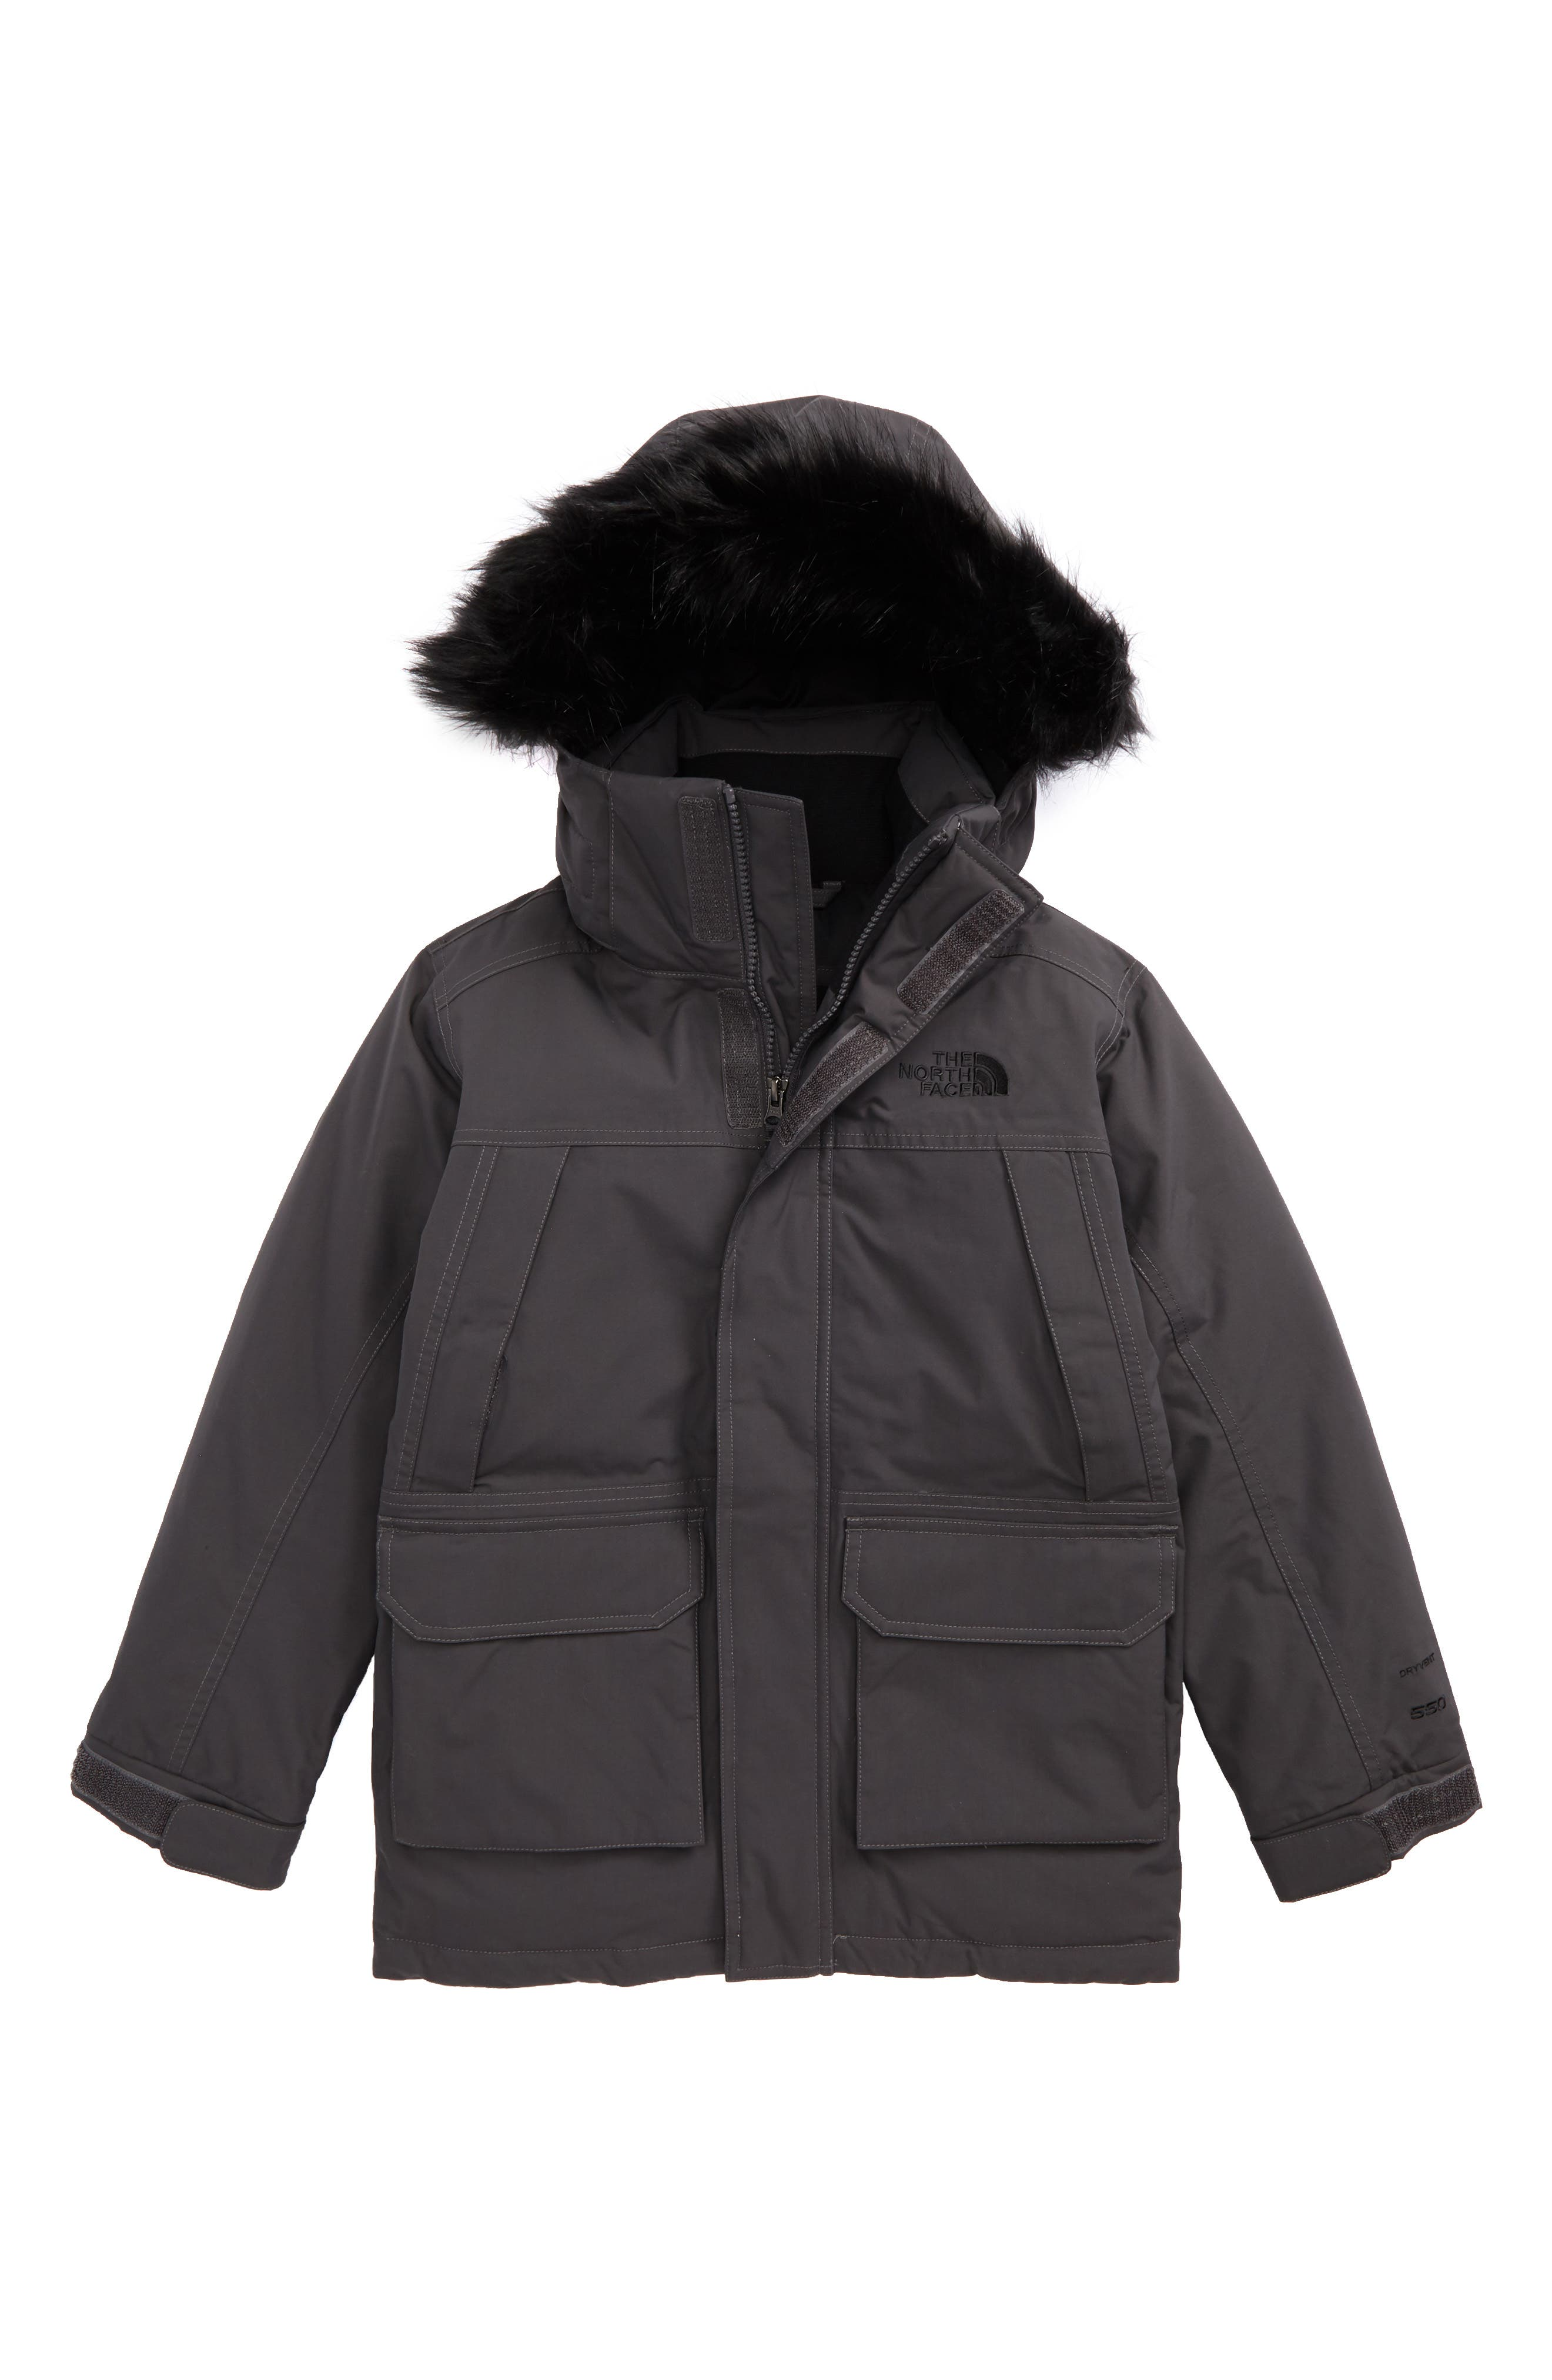 McMurdo Waterproof Down Parka with Faux Fur Trim,                             Main thumbnail 1, color,                             Graphite Grey